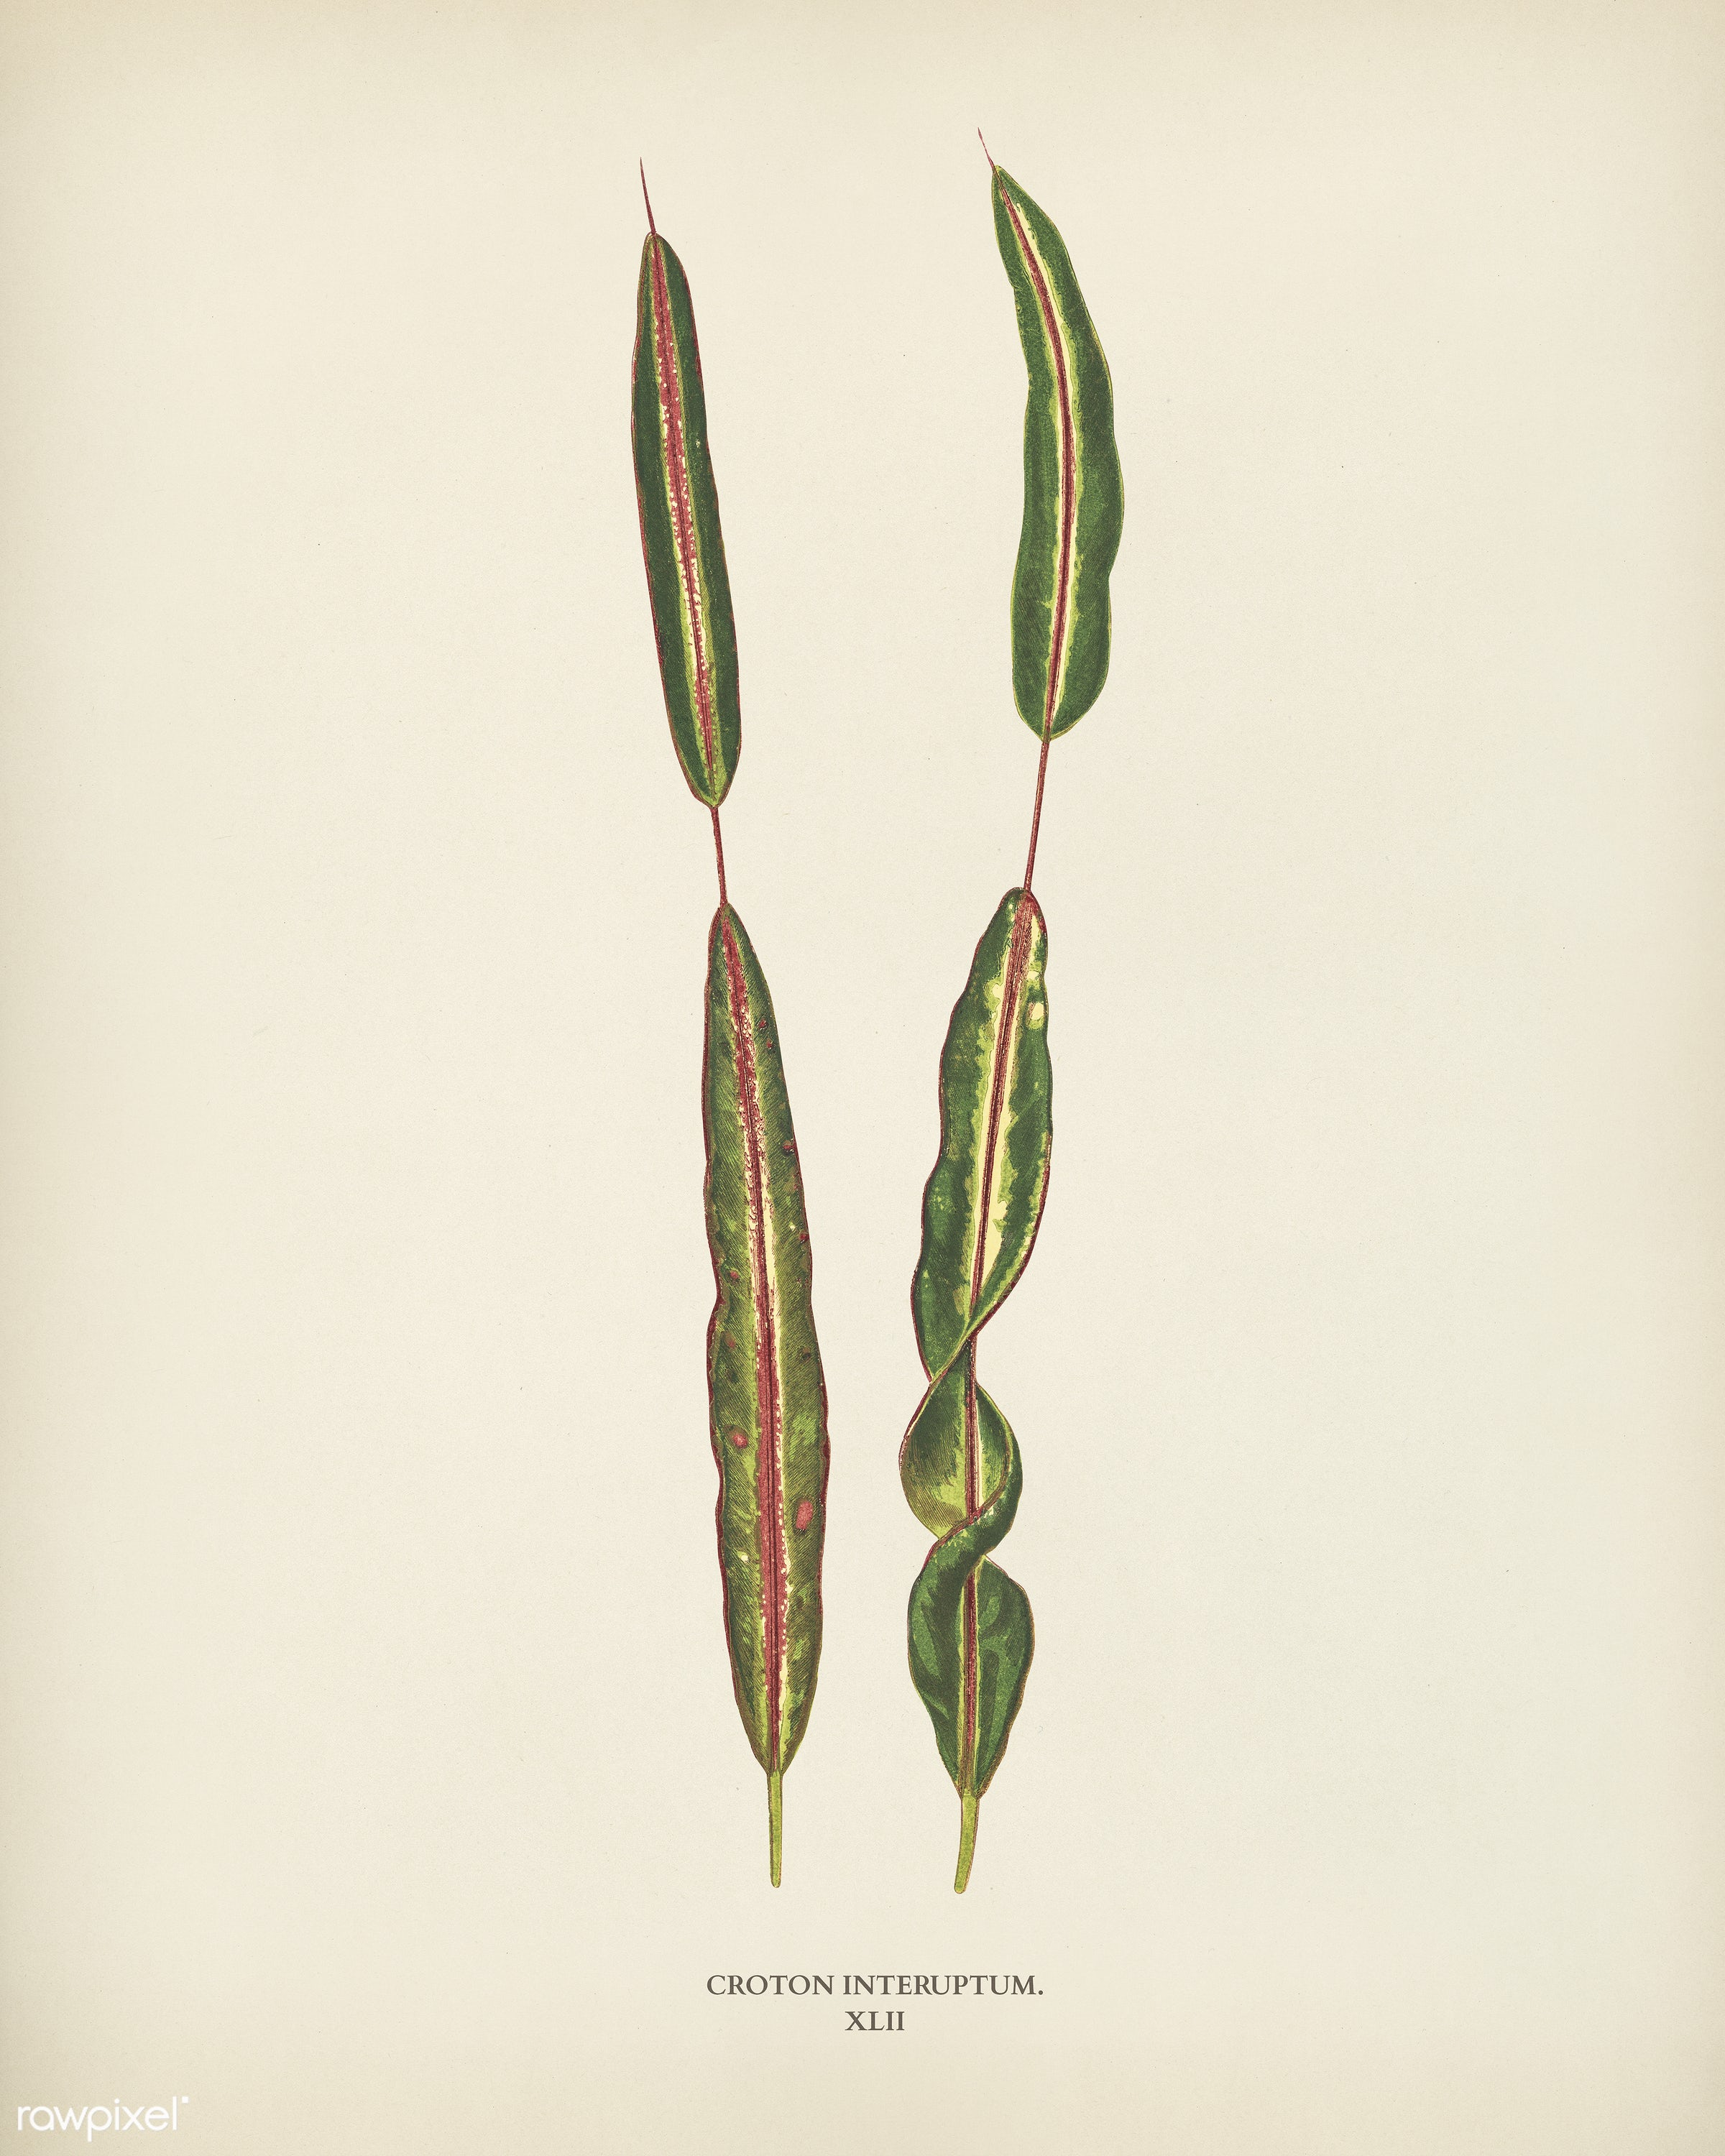 Croton interuptum engraved by Benjamin Fawcett (1808-1893) for Shirley Hibberd's (1825-1890) New and Rare Beautiful-...